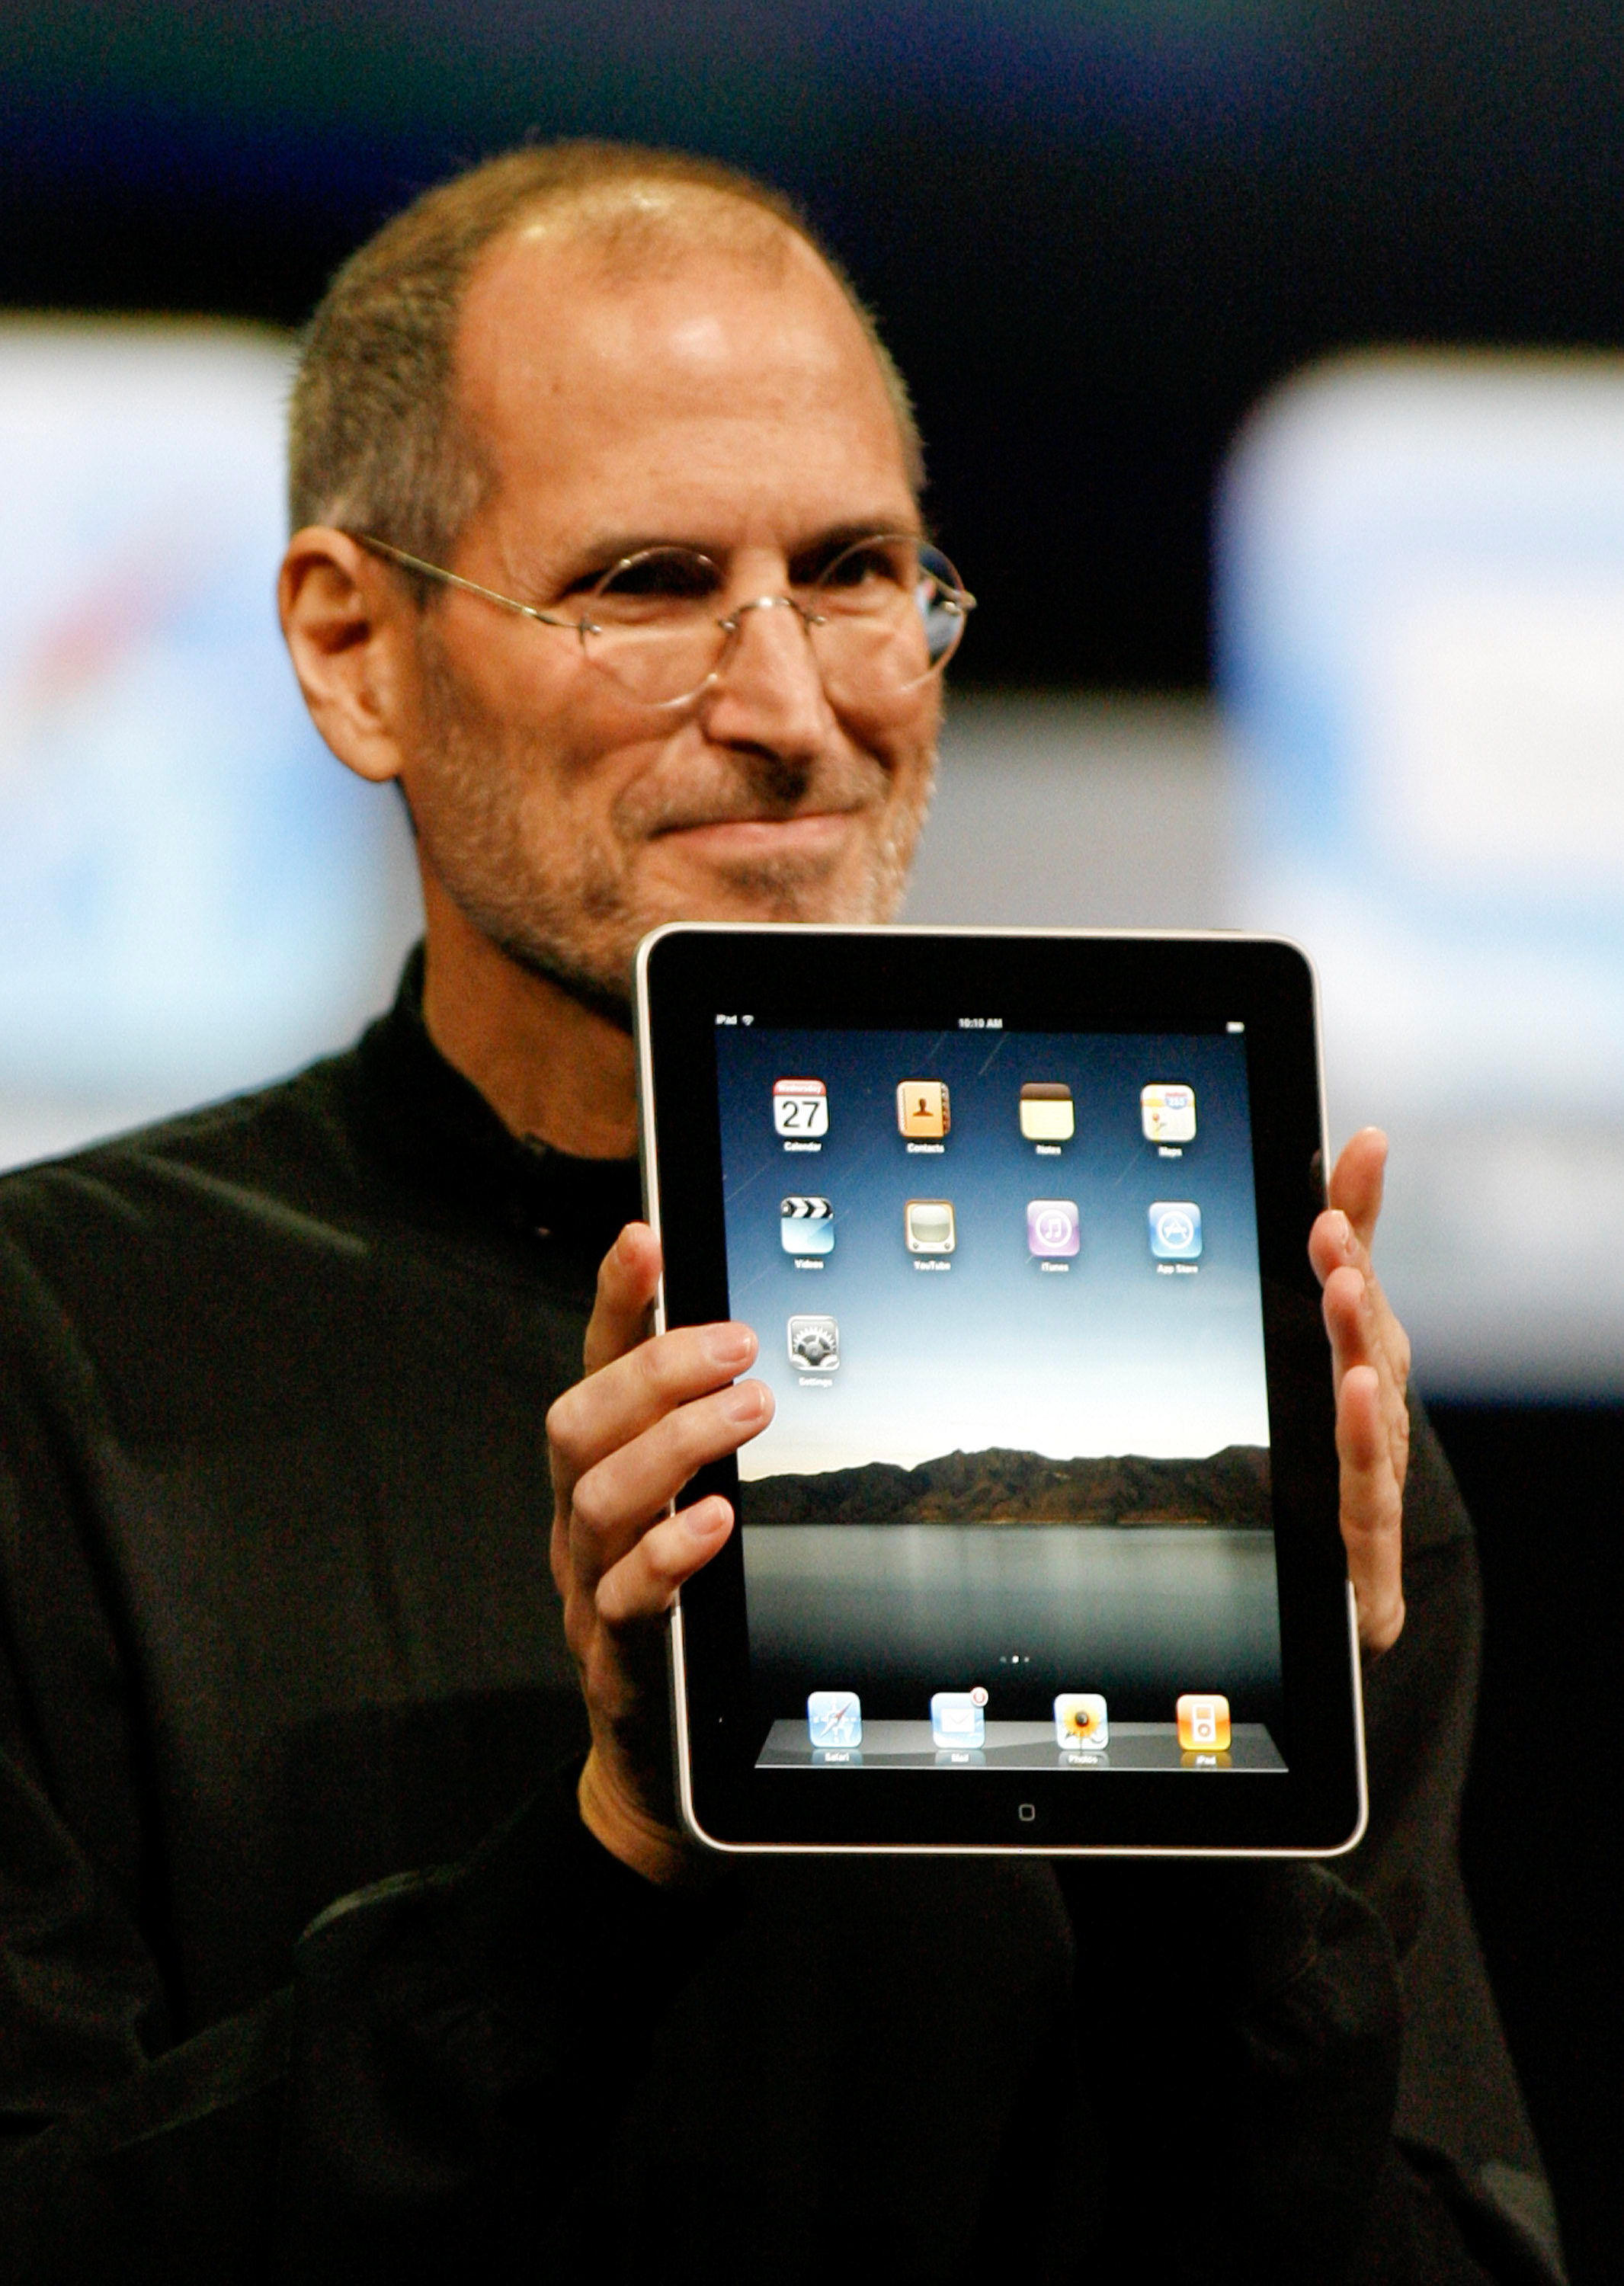 Apple CEO Steve Jobs holds an Apple iPad tablet during its debut at the Yerba Buena Center for the Arts Theater in San Francisco. The iPad would launch on April 3, 2010, with a price tag of $499.